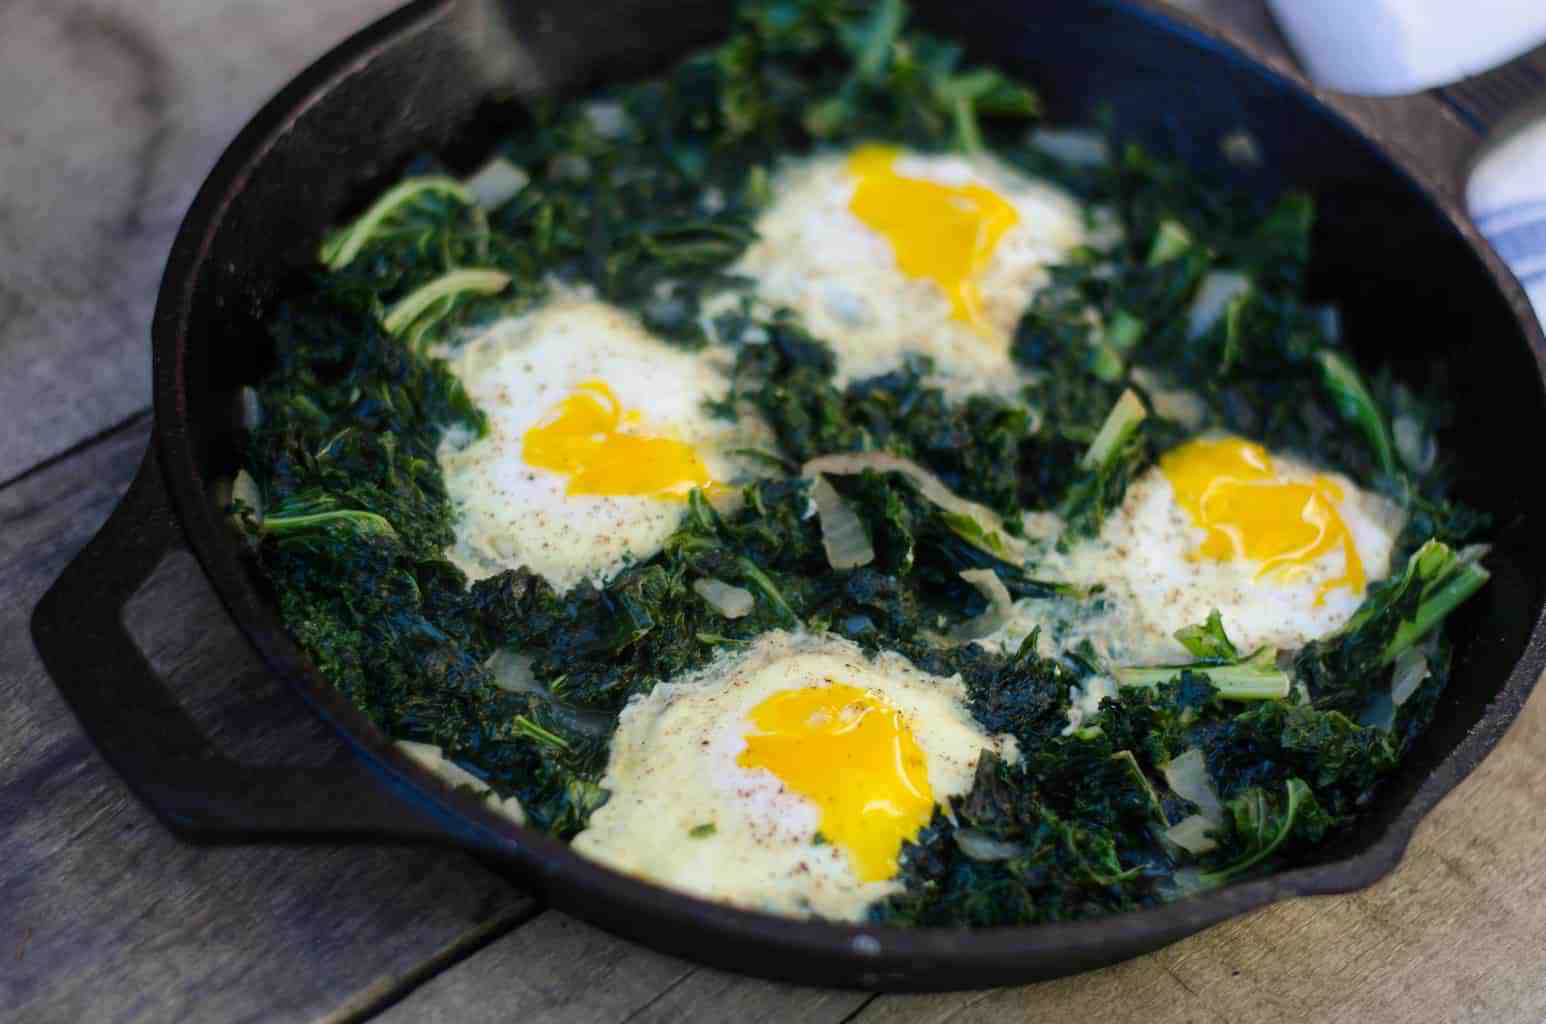 Spicy Eggs, Bacon and Kale